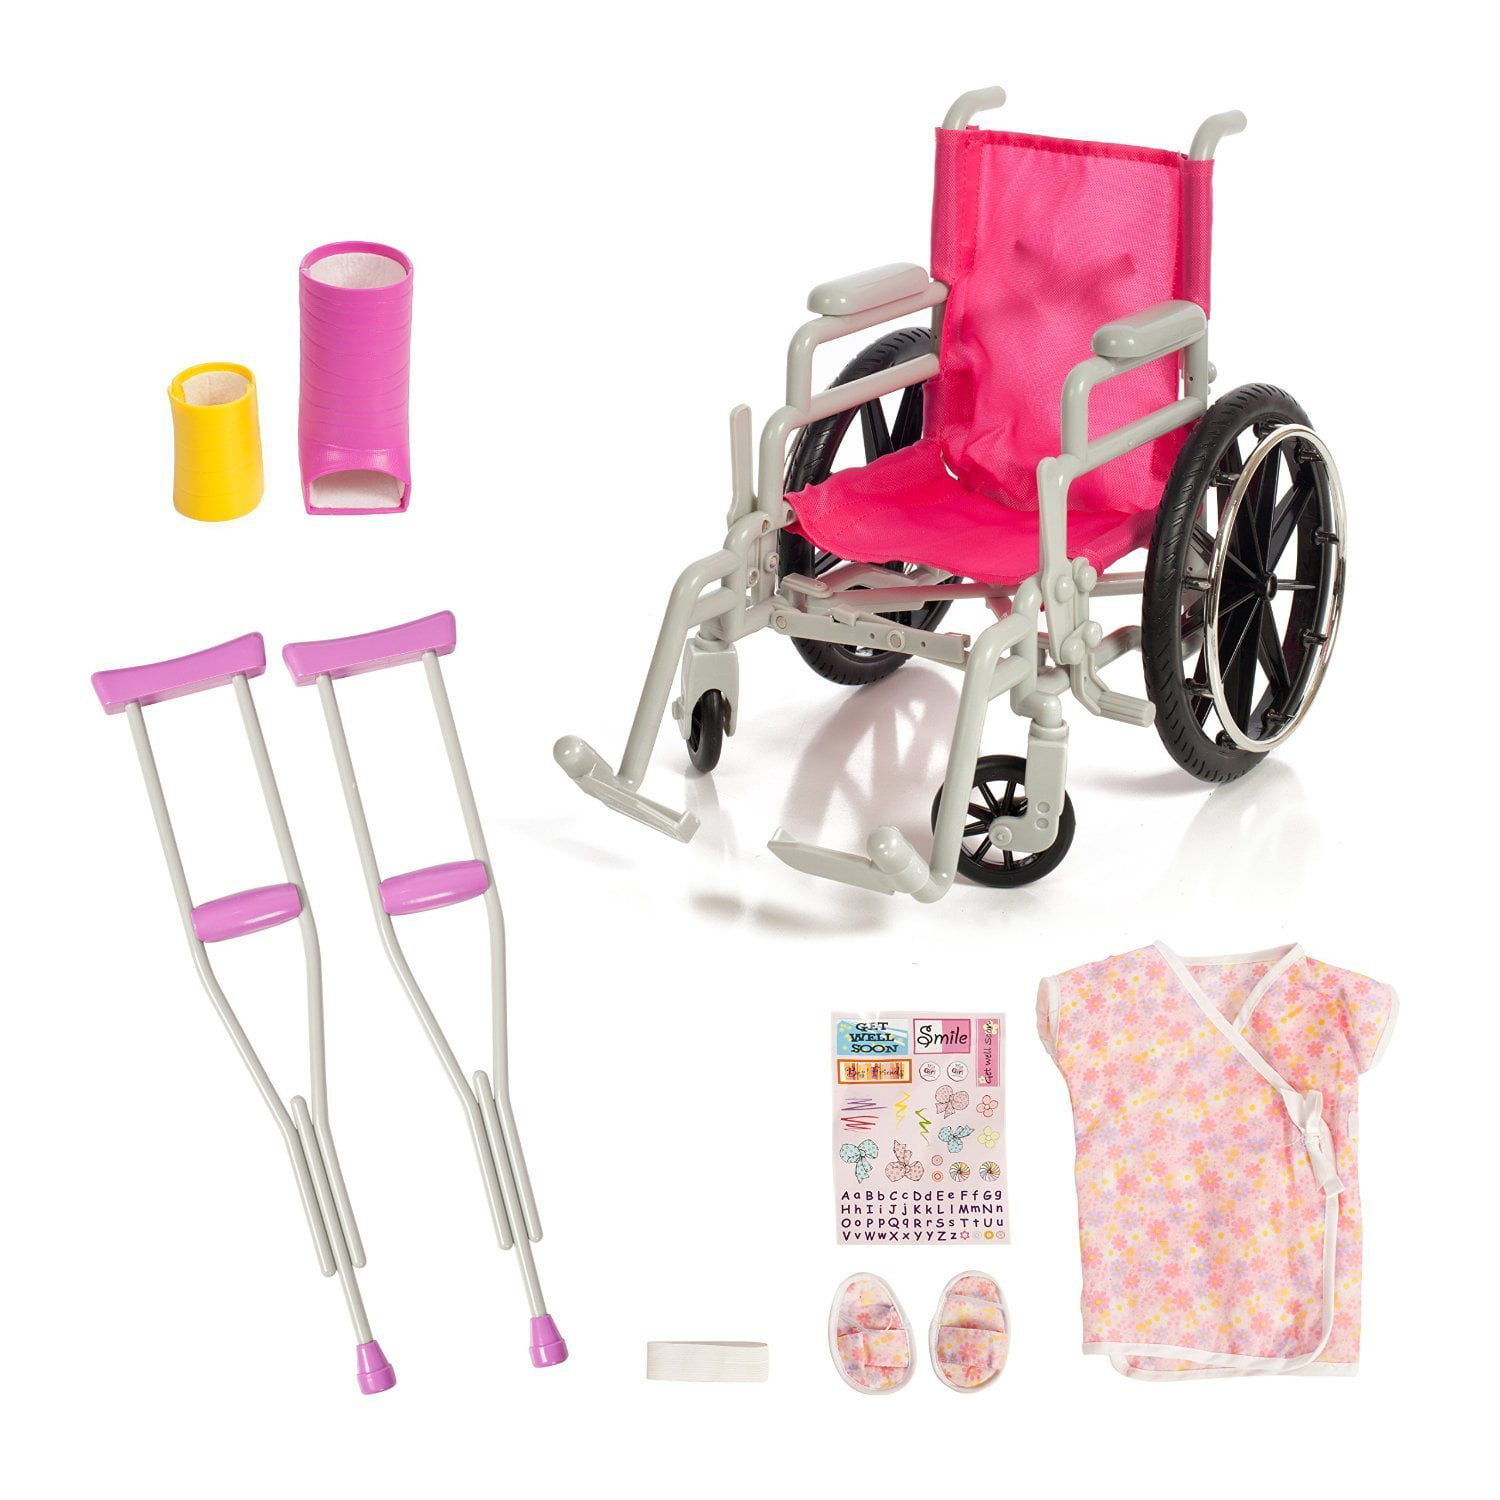 Prime Beverly Hills Doll Collection Wheelchair Set For 18 Inch American Girl Dolls Fully Assembled Wheelch Home Interior And Landscaping Ologienasavecom